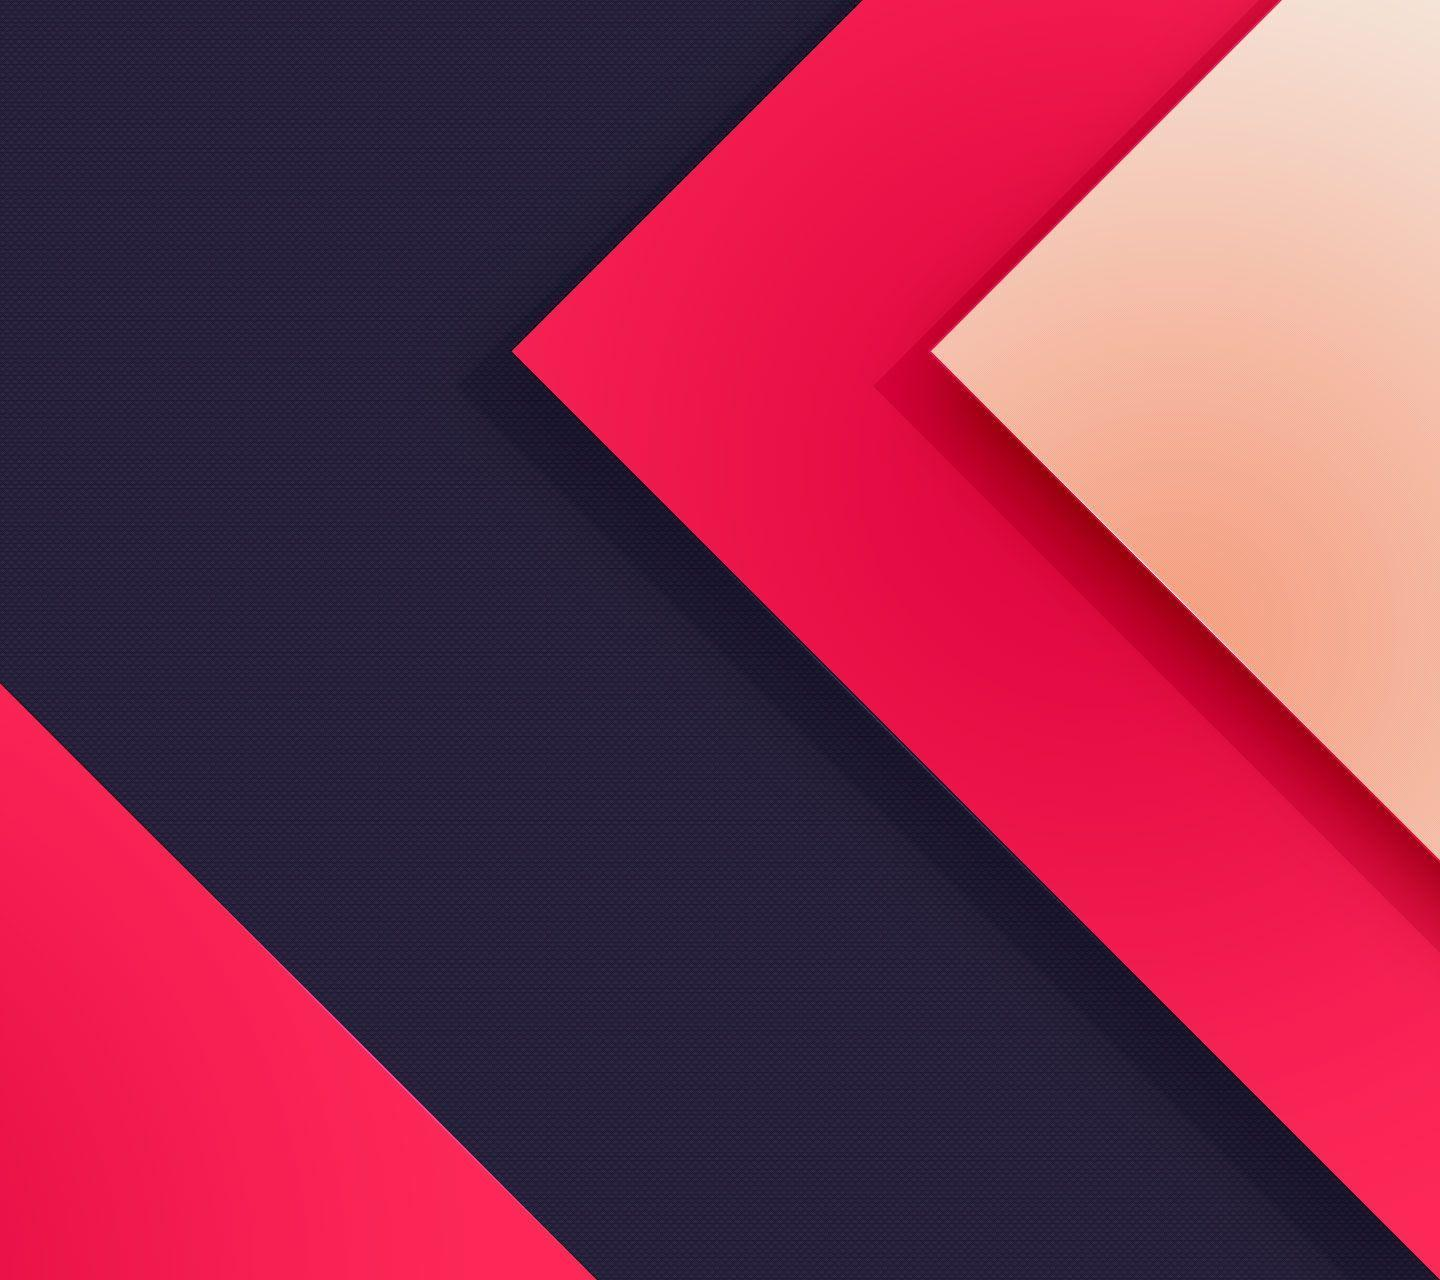 Material Design wallpaper – wallpaper free download